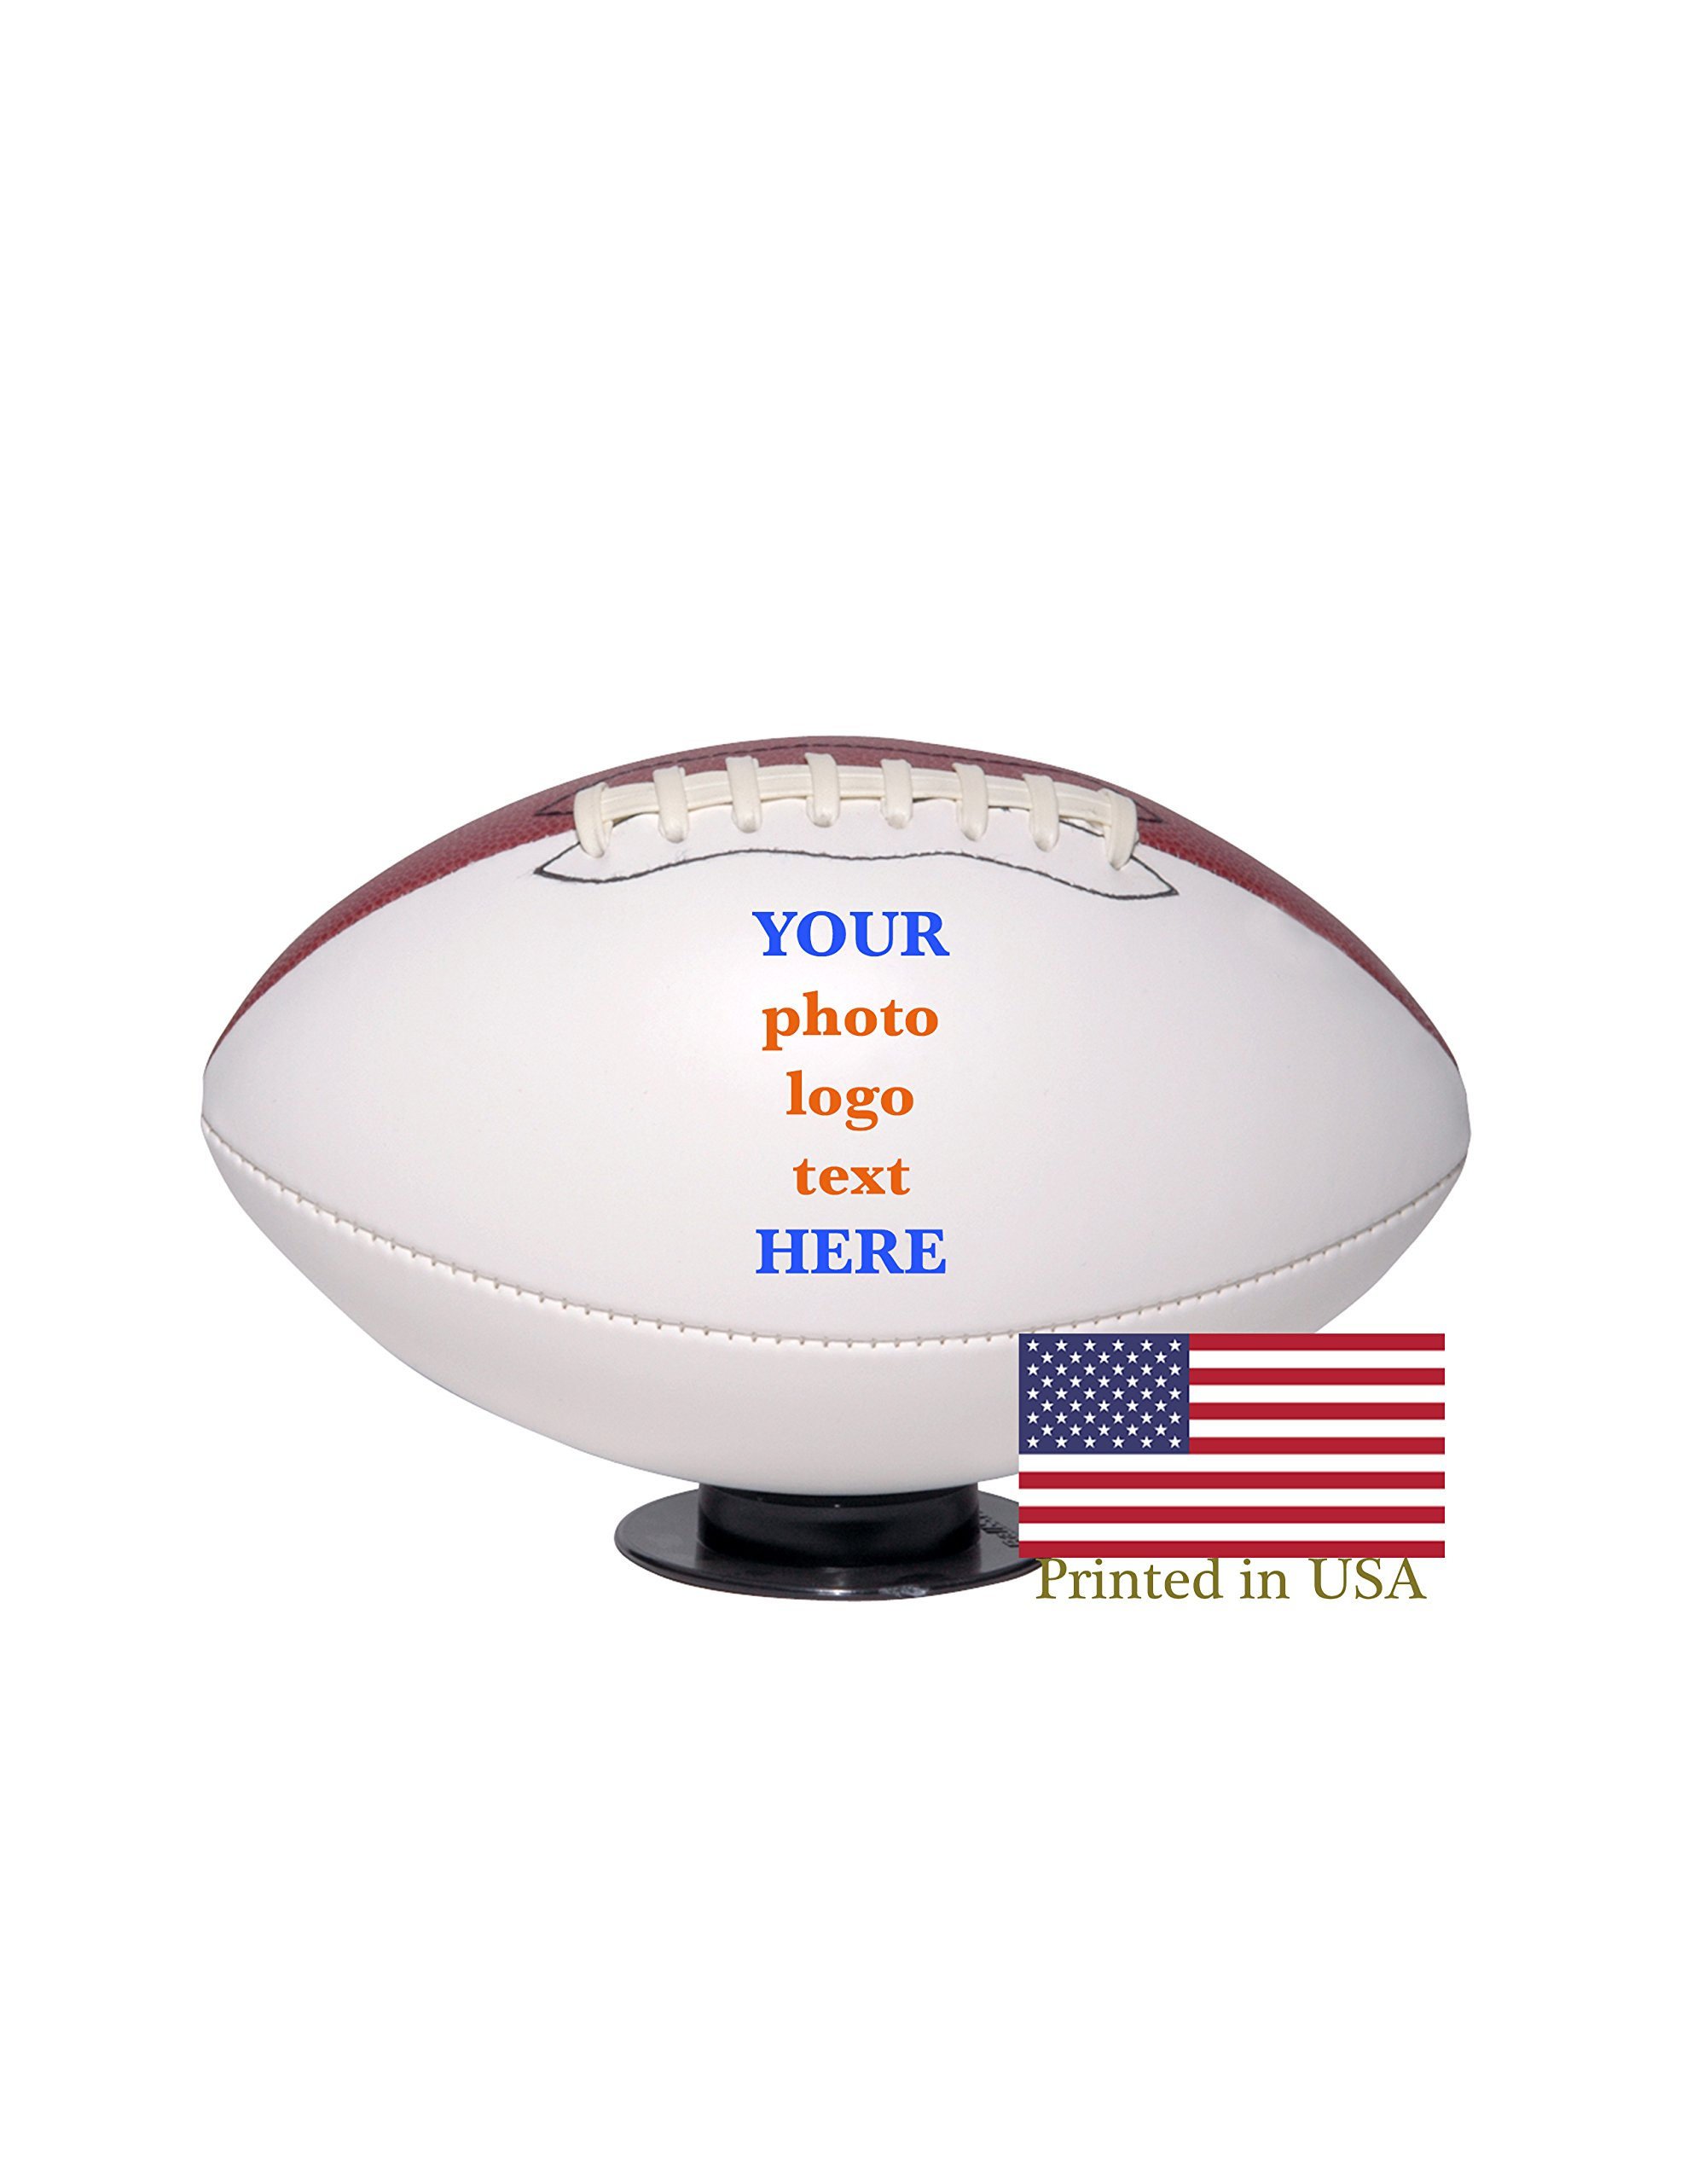 Custom Personalized Football Full Size Ships in 3 Business Days, High Resolution Photos, Logos & Text on Football Balls for Players, Trophies, MVP Awards, Coaches